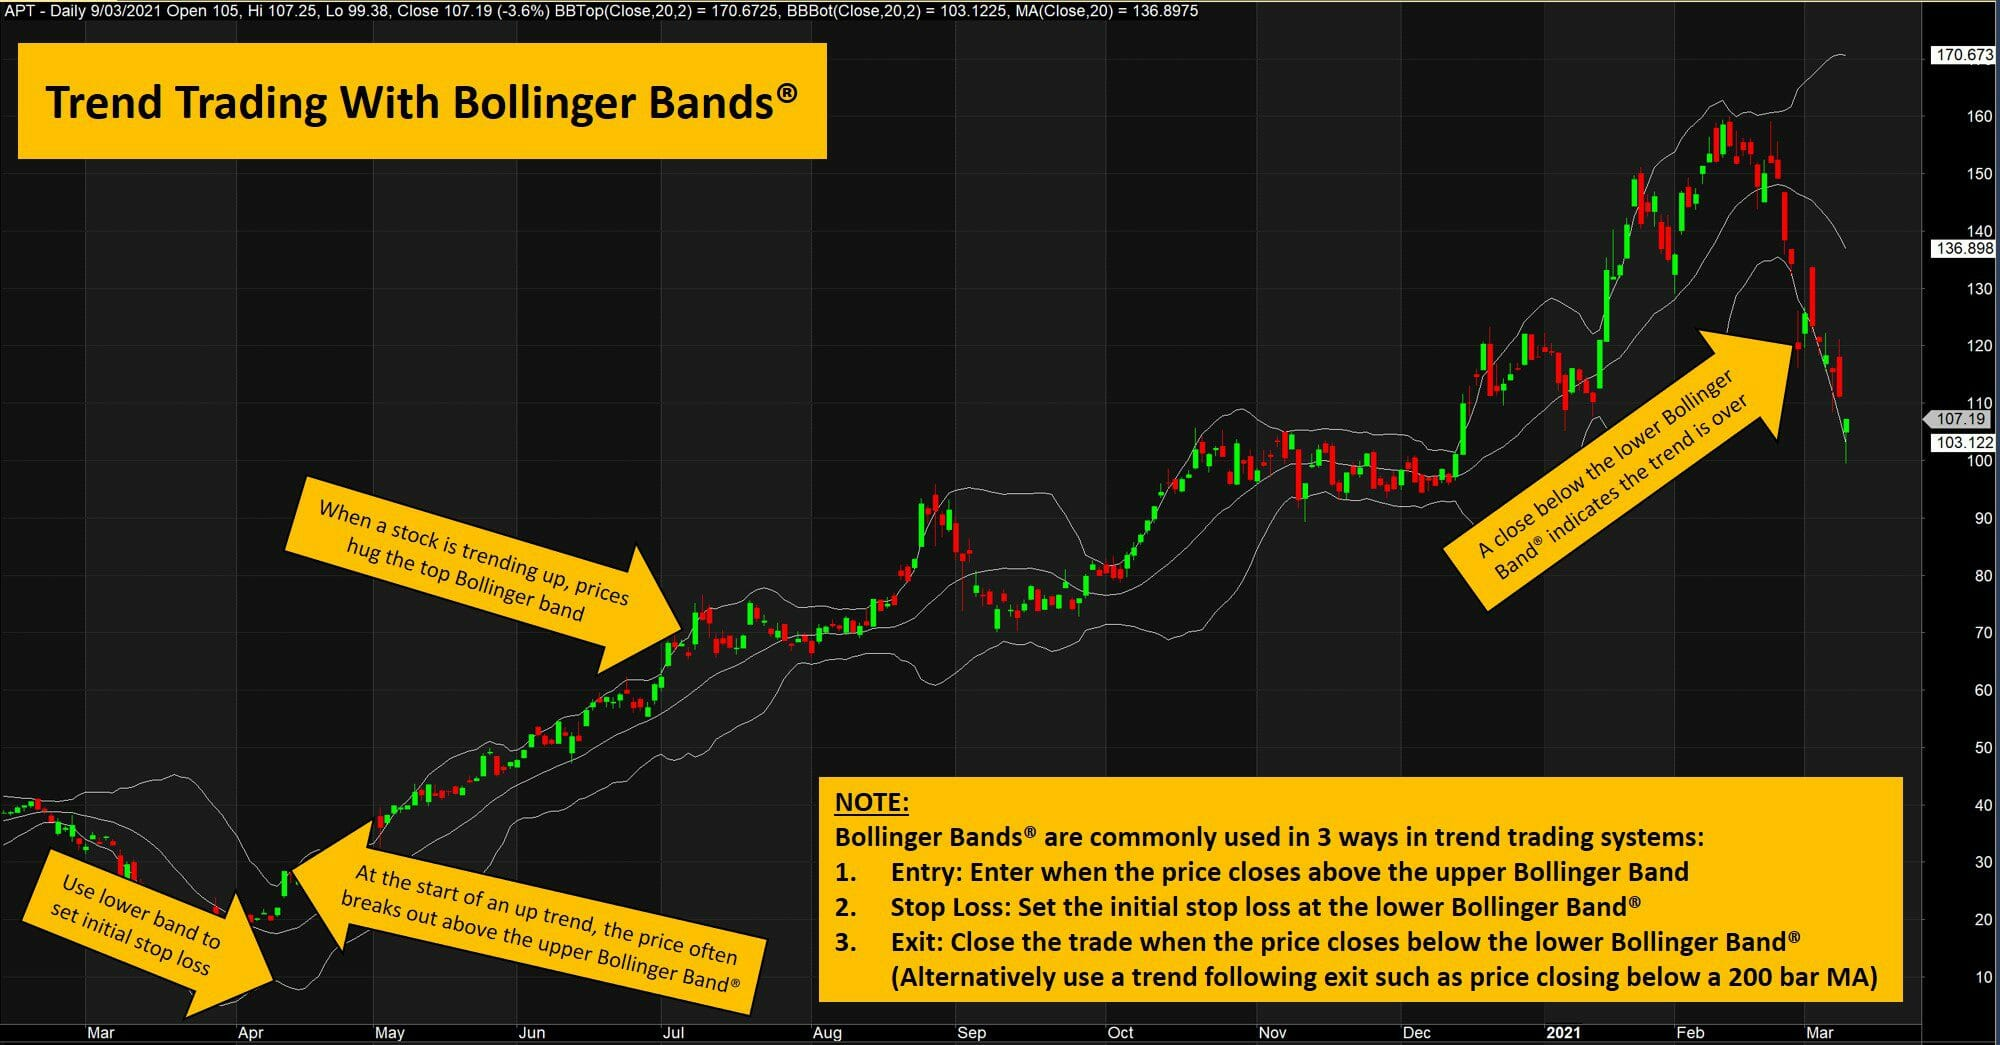 The ultimate guide to bollinger bands - trend trading with bollinger bands